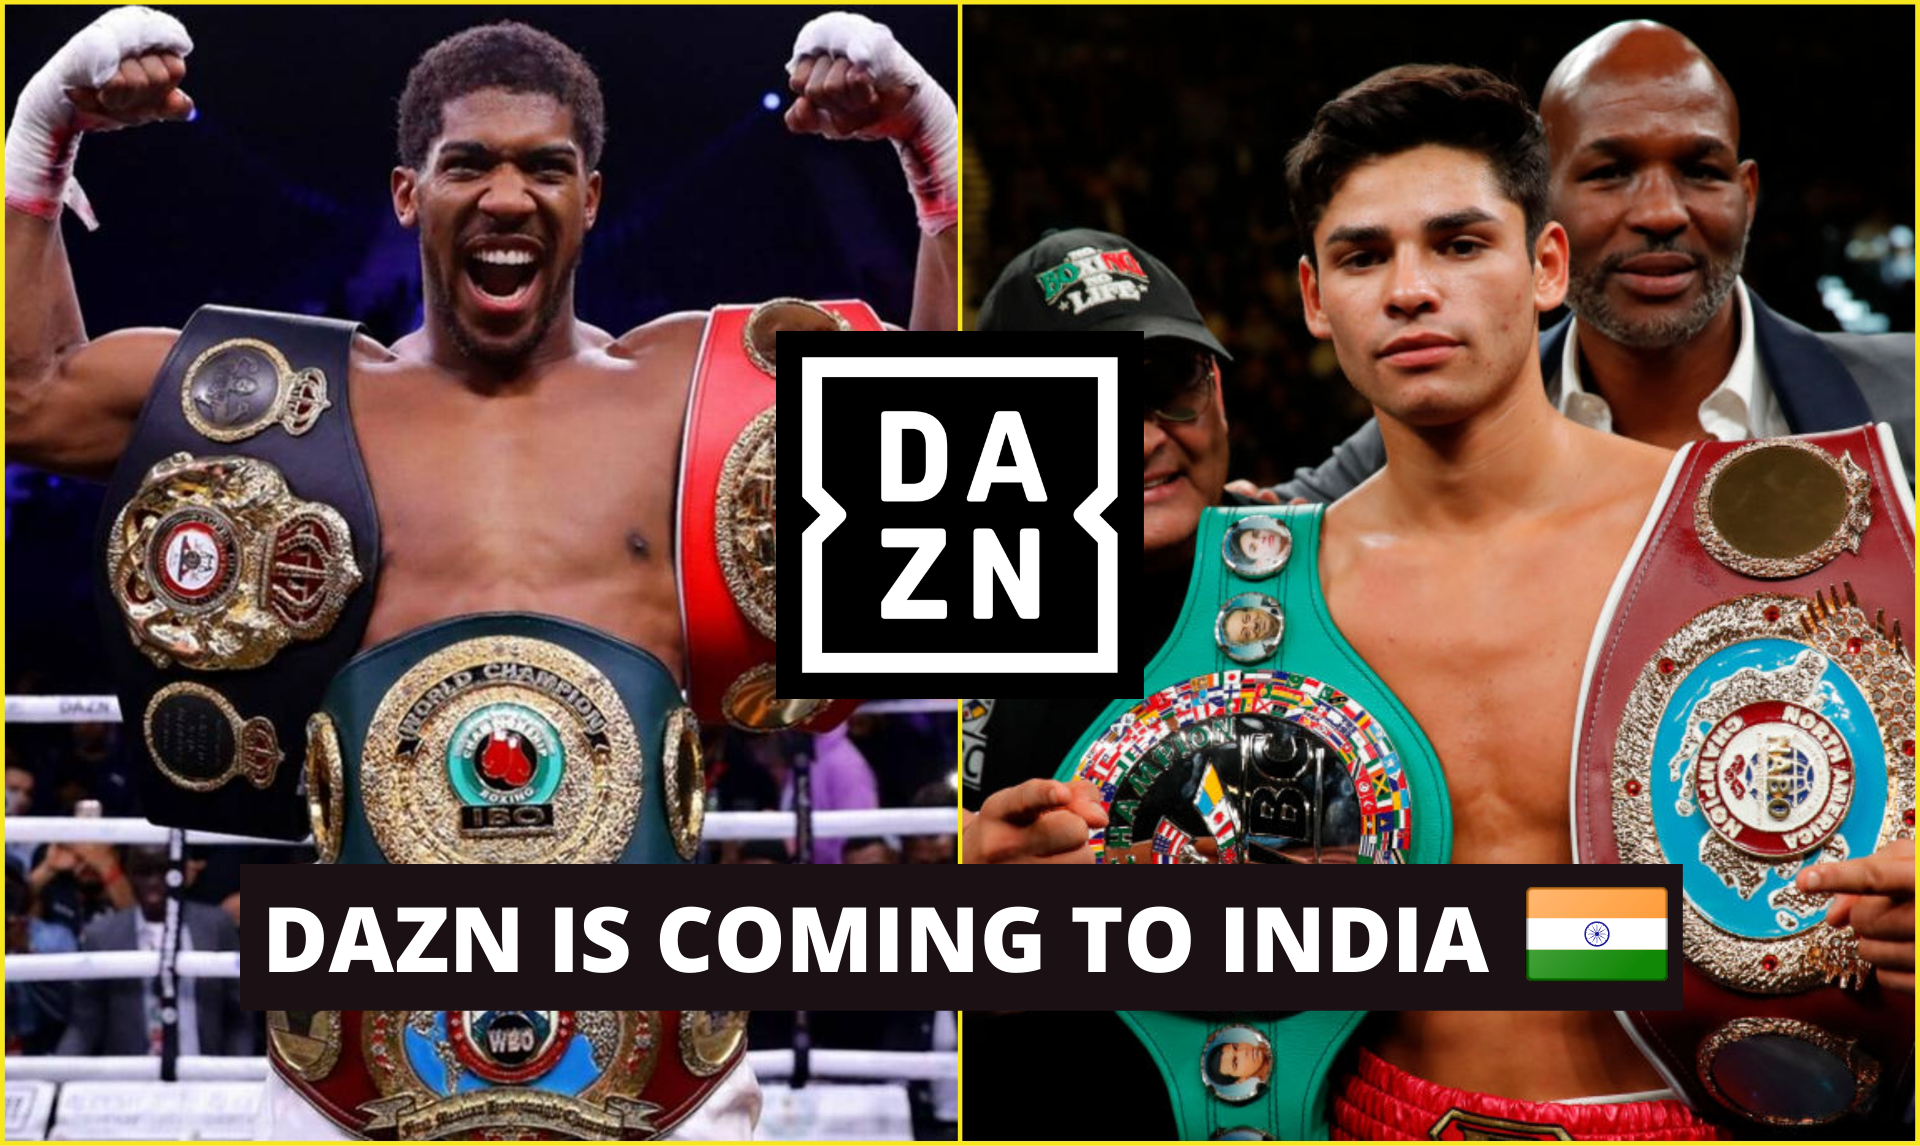 DAZN is finally coming to India, Fans can now watch Anthony Joshua, Ryan Garcia fight LIVE - DAZN